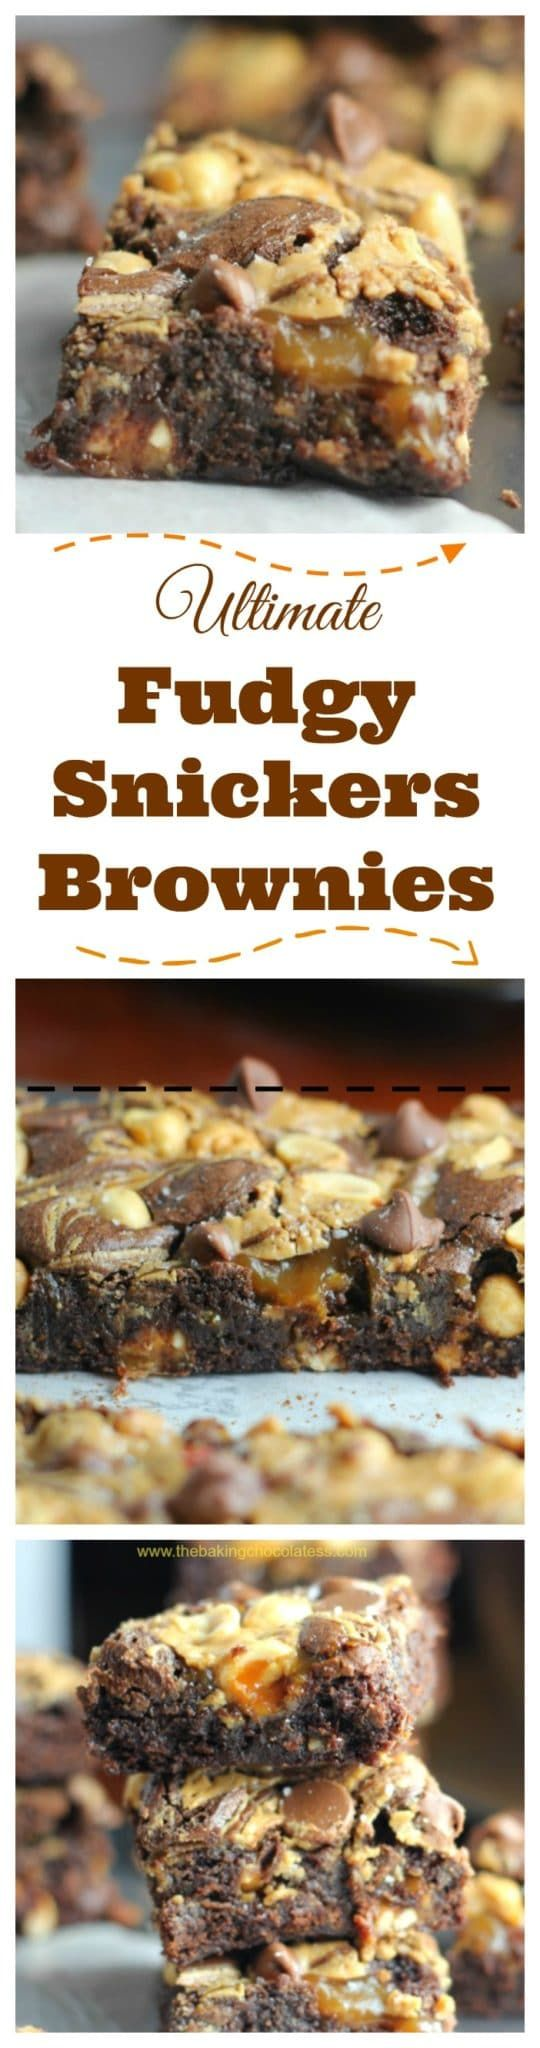 Ultimate Fudgy Snickers Brownies via @https://www.pinterest.com/BaknChocolaTess/